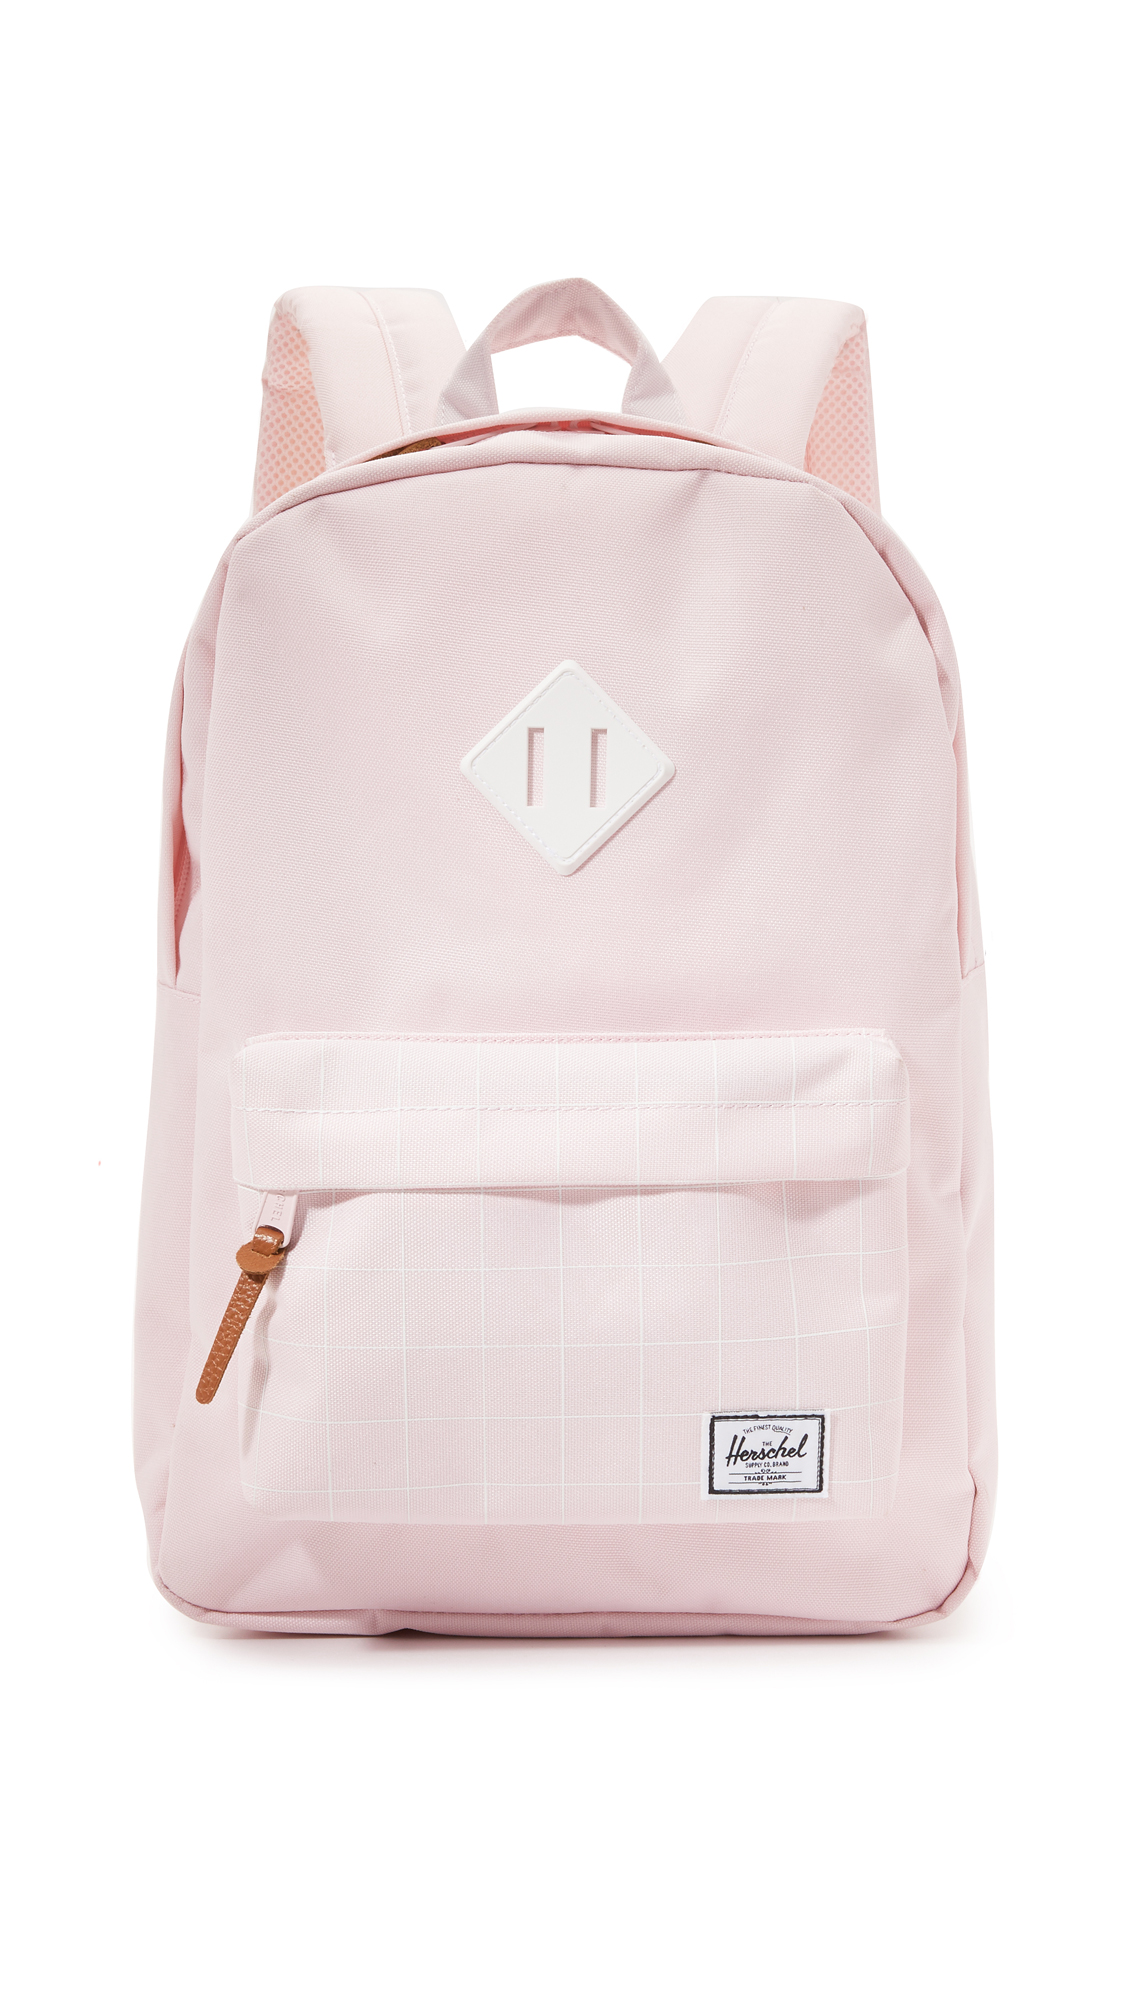 13e7ad014221 Herschel Backpack Pink And Blue- Fenix Toulouse Handball